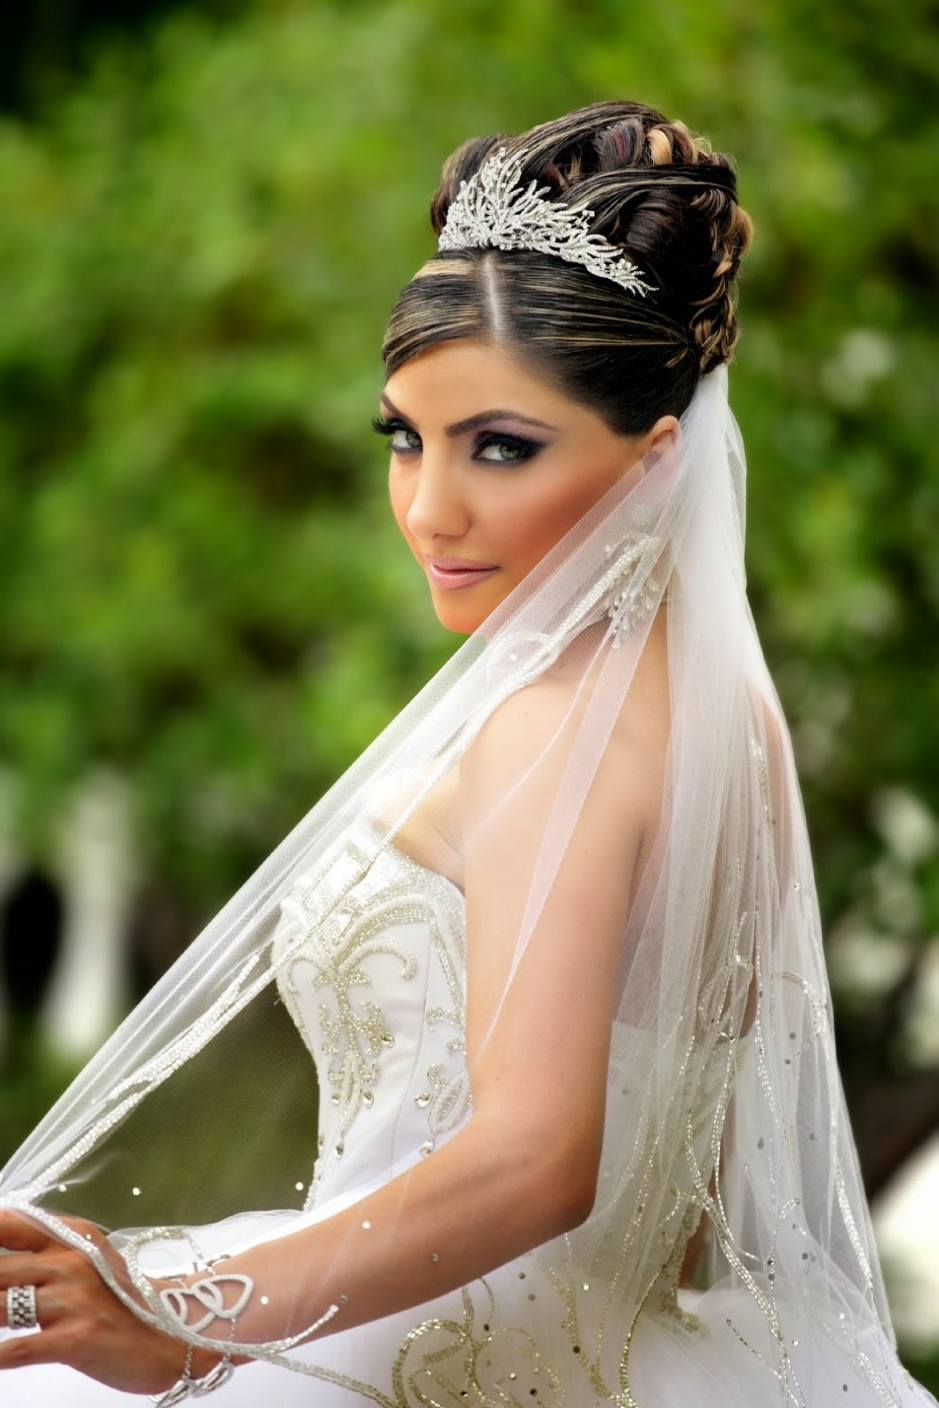 Bridal Hairstyle With Tiara Hairstyles With Tiara Wedding Hairstyles Throughout Well Known Tiara Wedding Hairstyles (View 3 of 15)